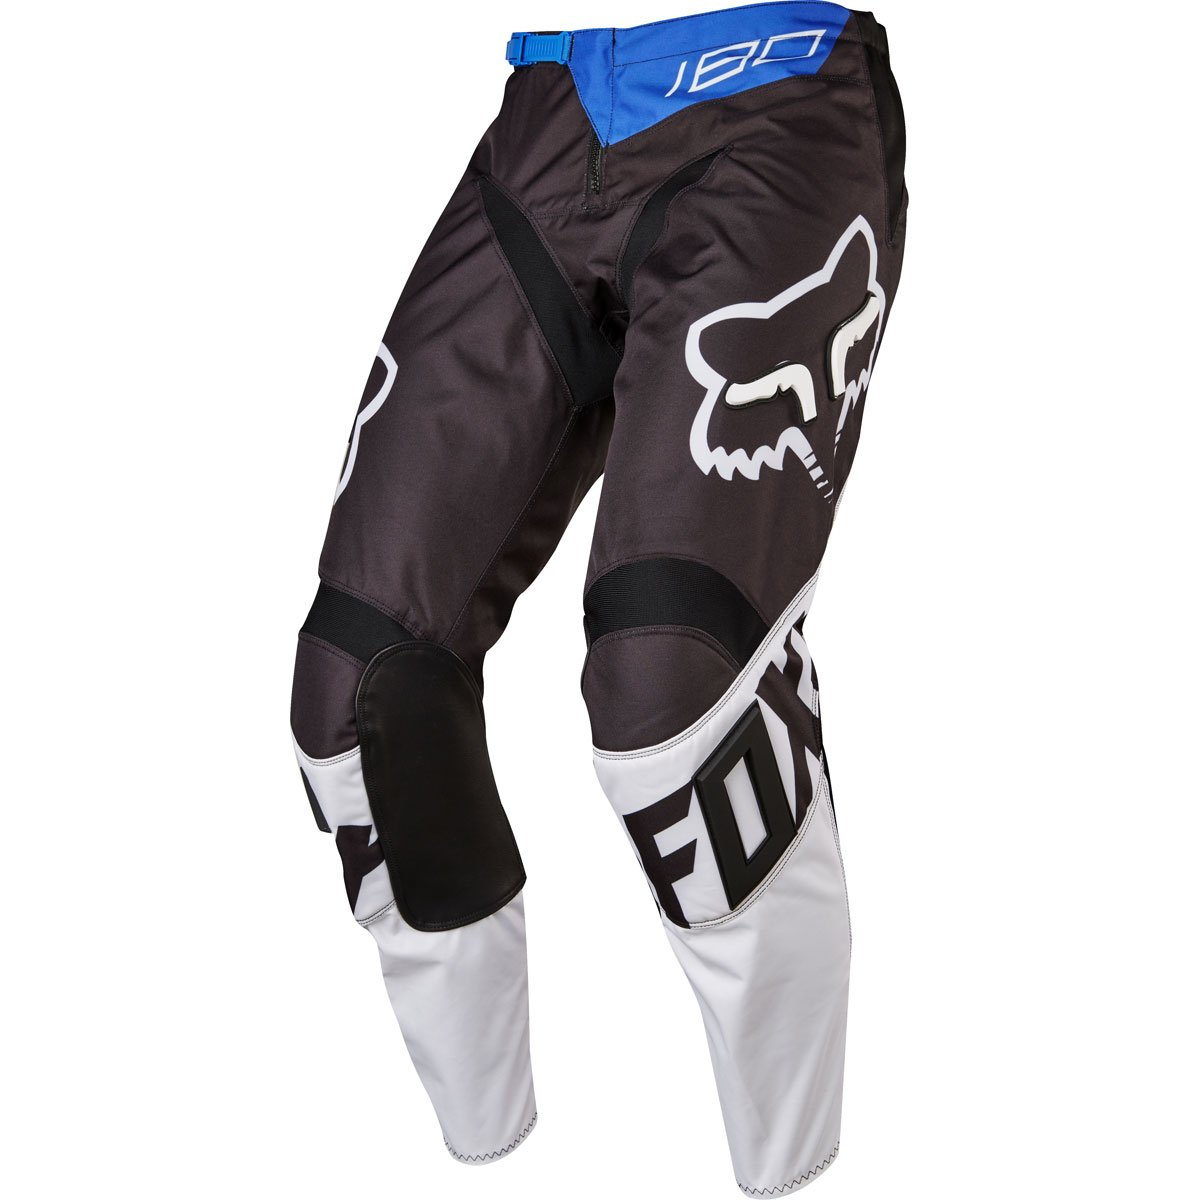 Fox Racing 2017 180 Race Youth Boys Off-Road Motorcycle Pants - Black/Size 26